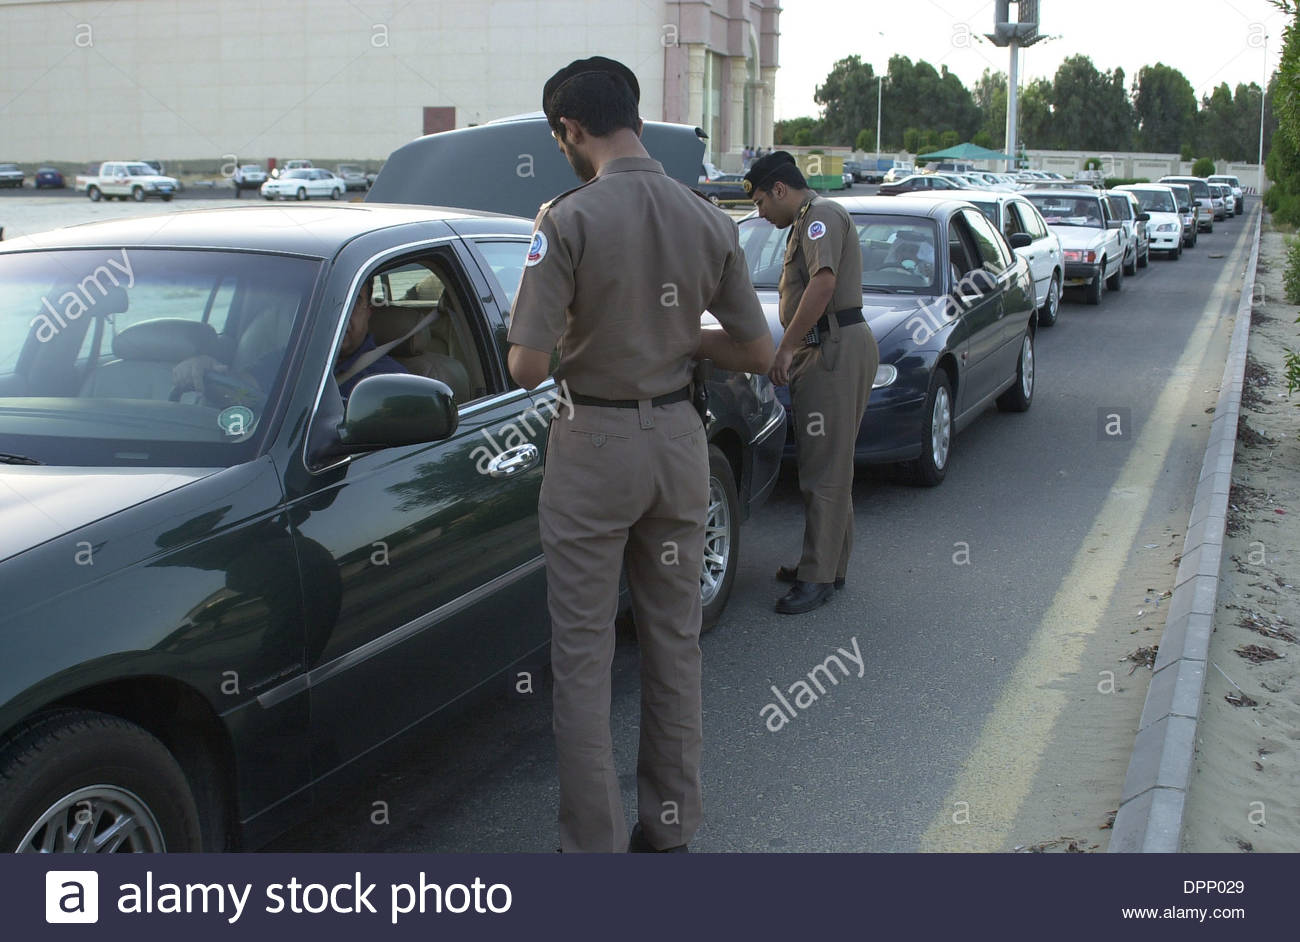 Al khobar saudi arabia police from the ministry of interior stop searching cars